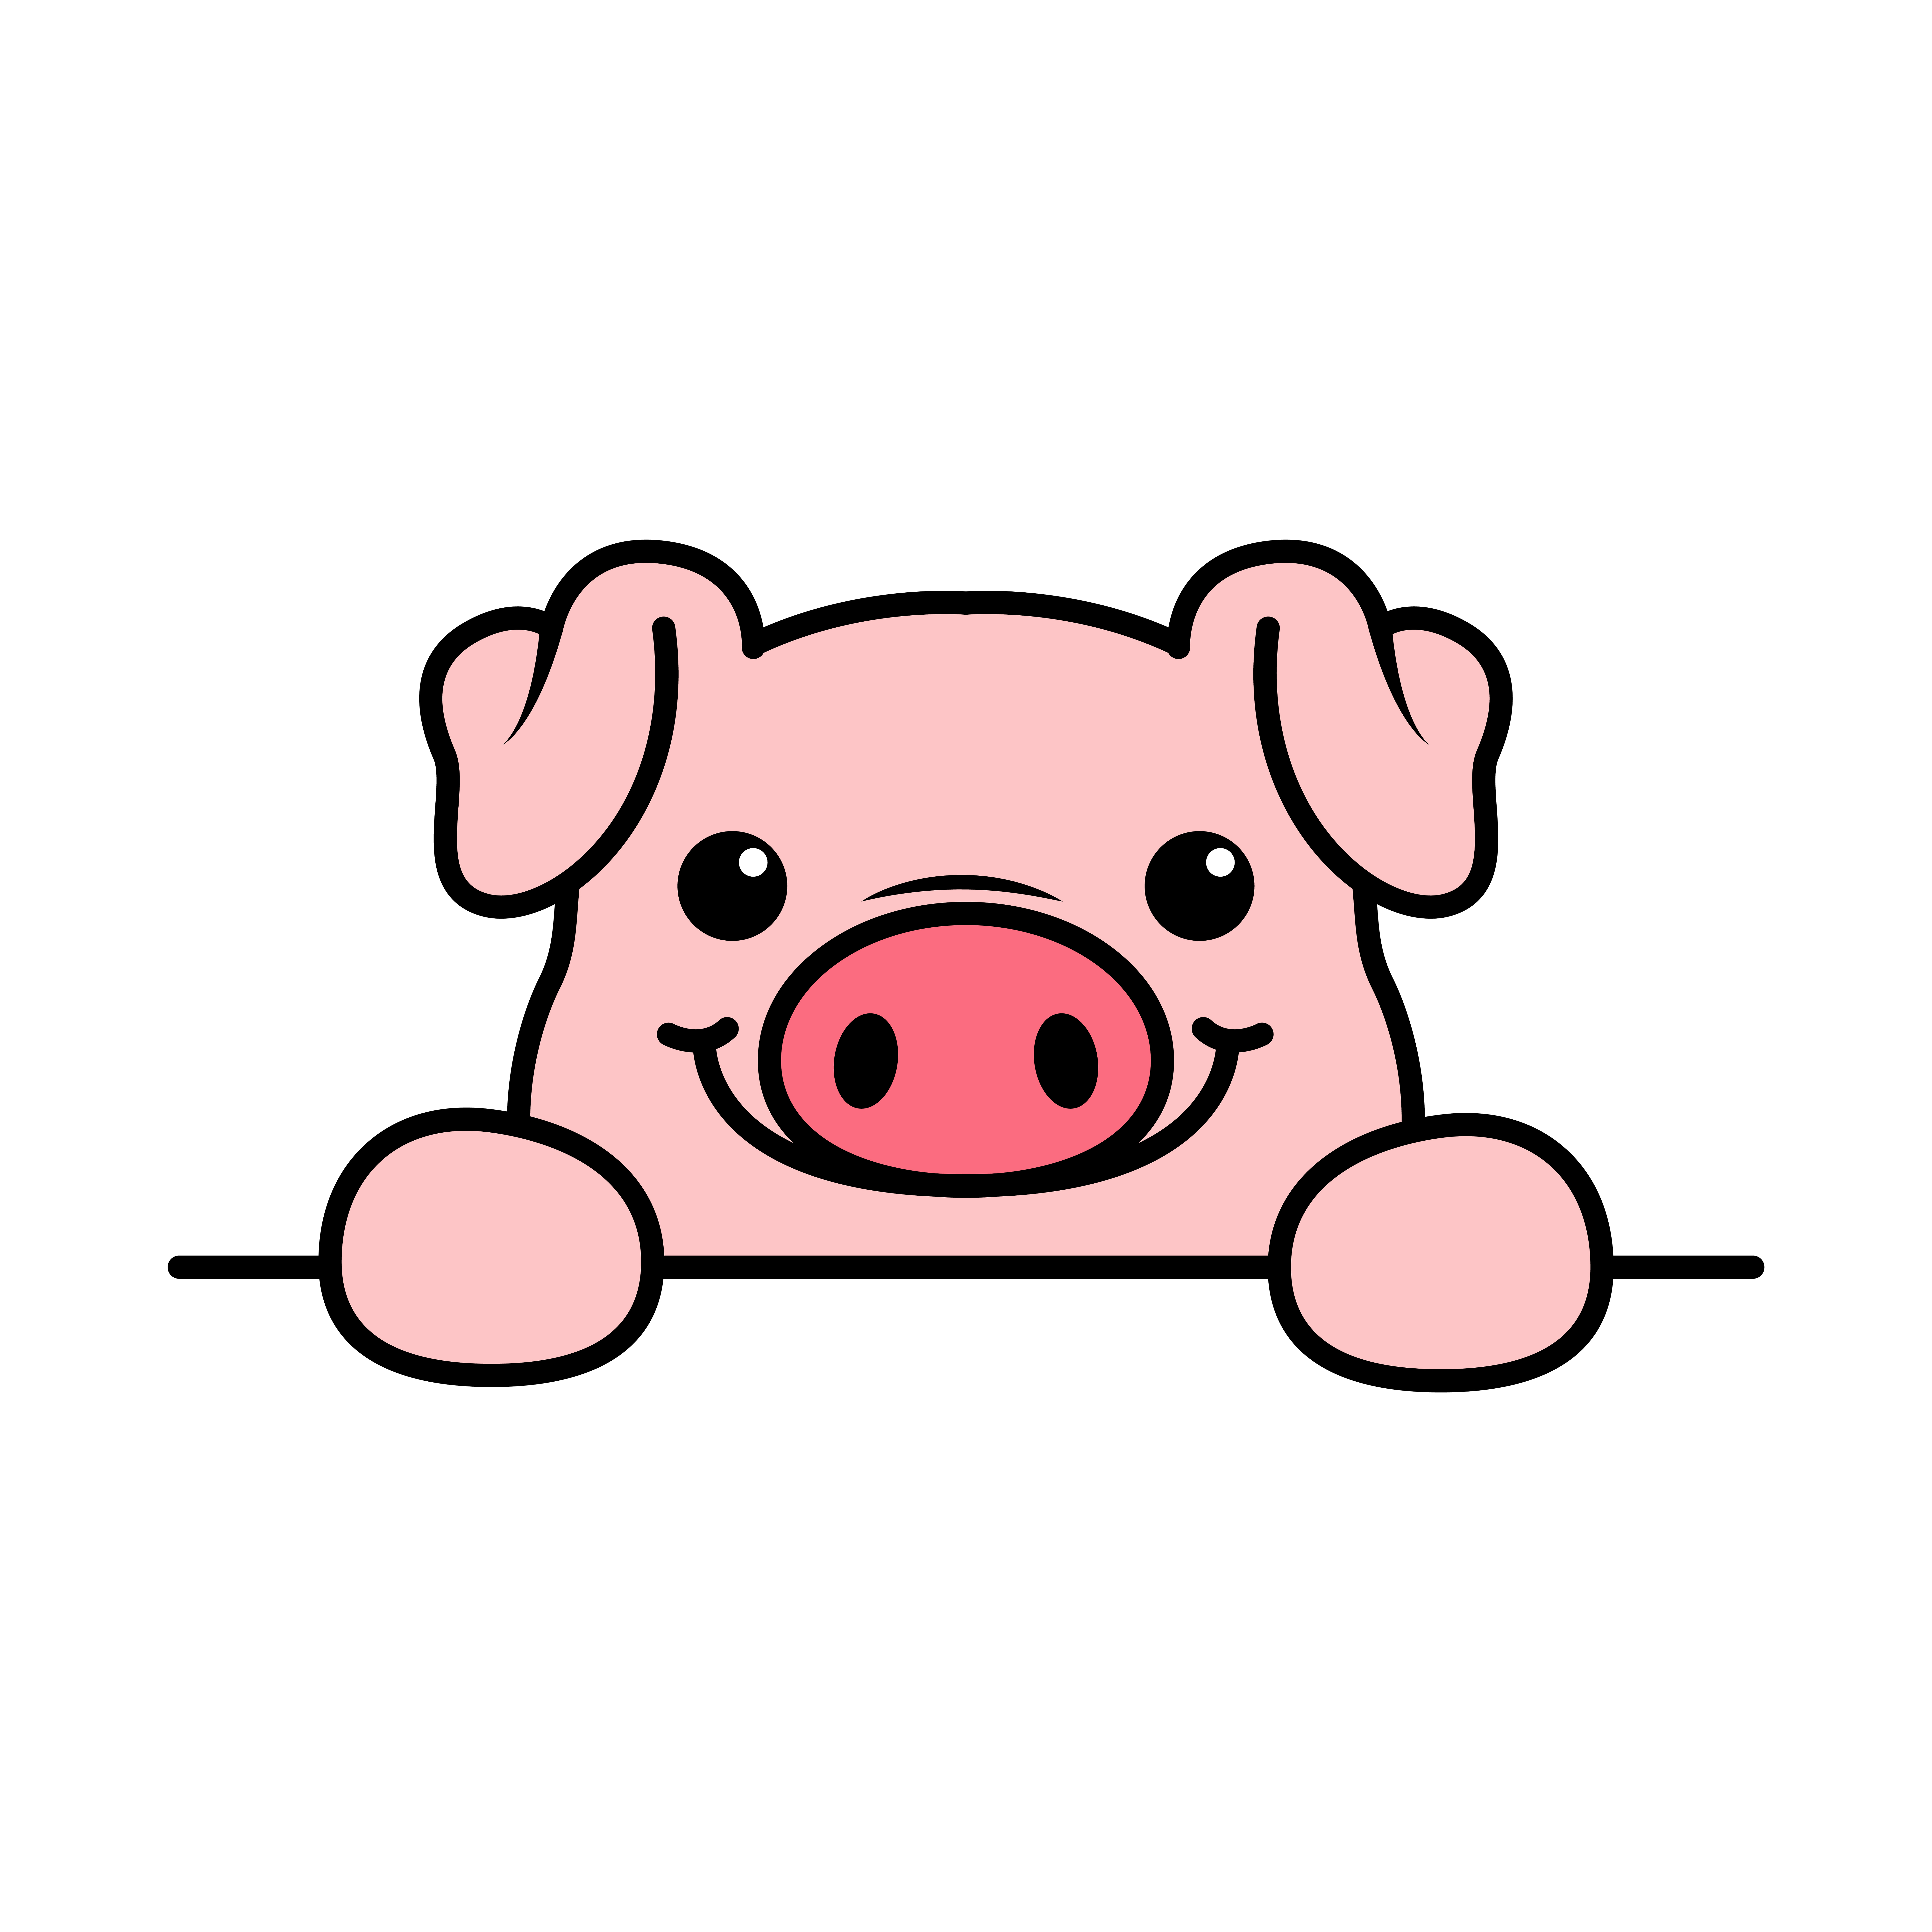 Cute Pig Paws Up Over Wall Pig Face Cartoon Icon Download Free Vectors Clipart Graphics Vector Art